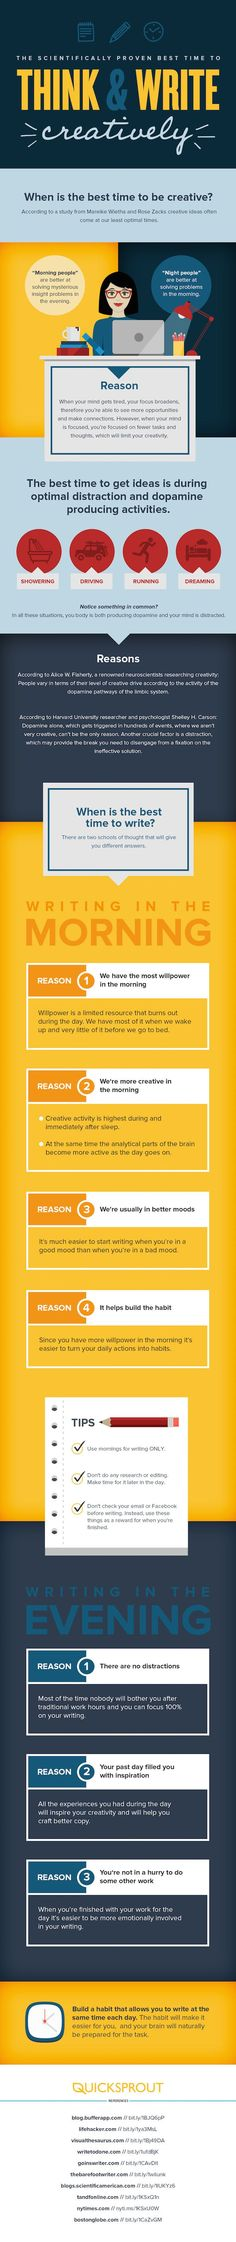 The Scientifically Proven Best Time to Write & Think Creatively #Infographic